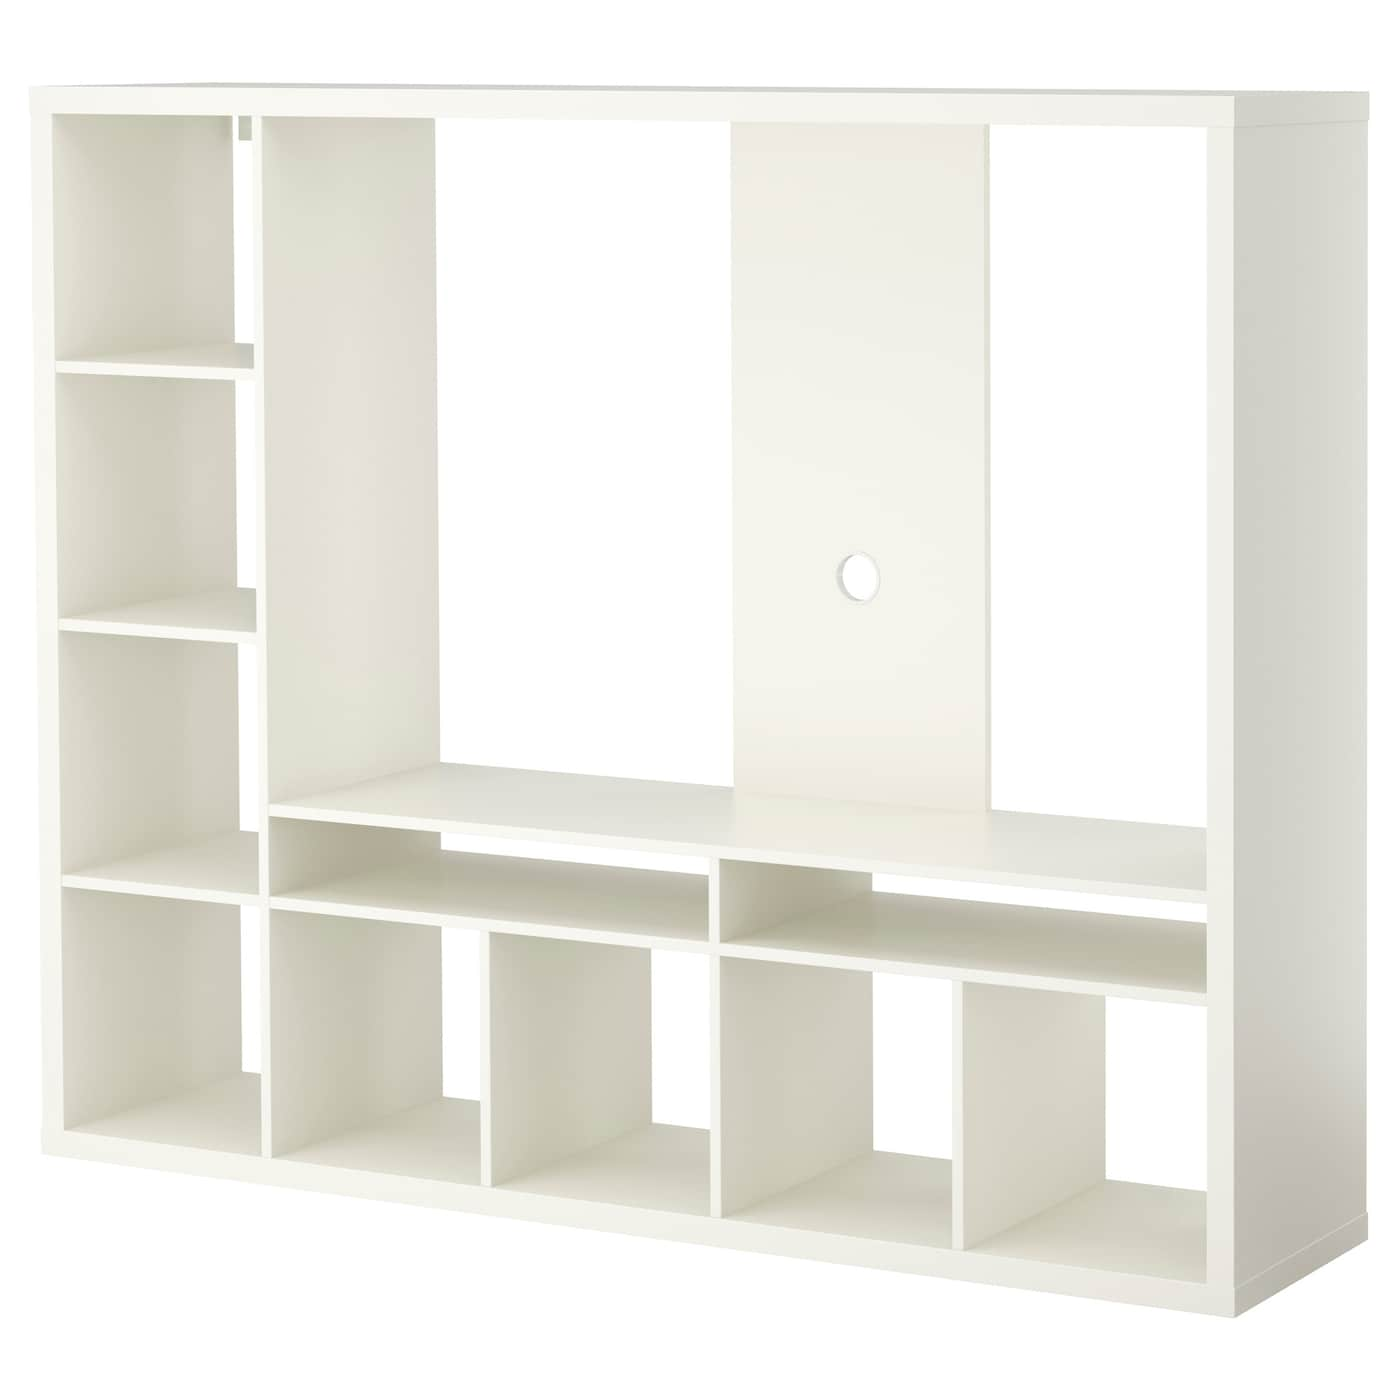 Storage Furniture Accessories Ikea Ireland # Meuble Tv Ikea Kallax